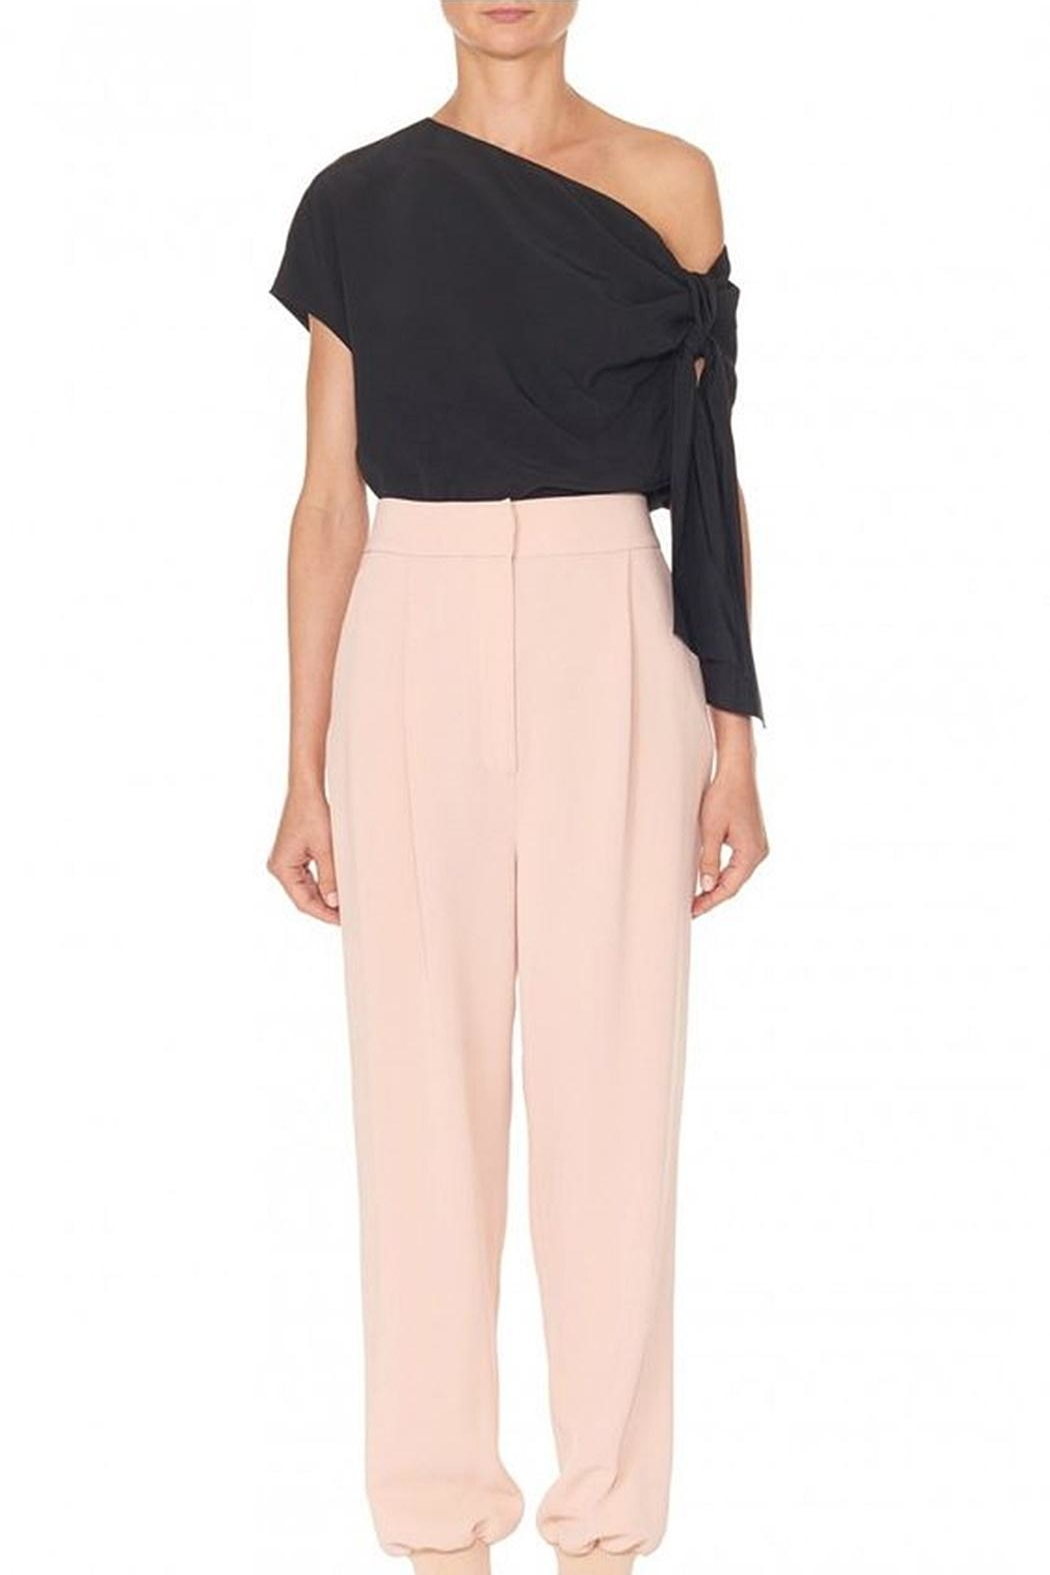 Tibi Silk Asymmetrical Top - Front Full Image